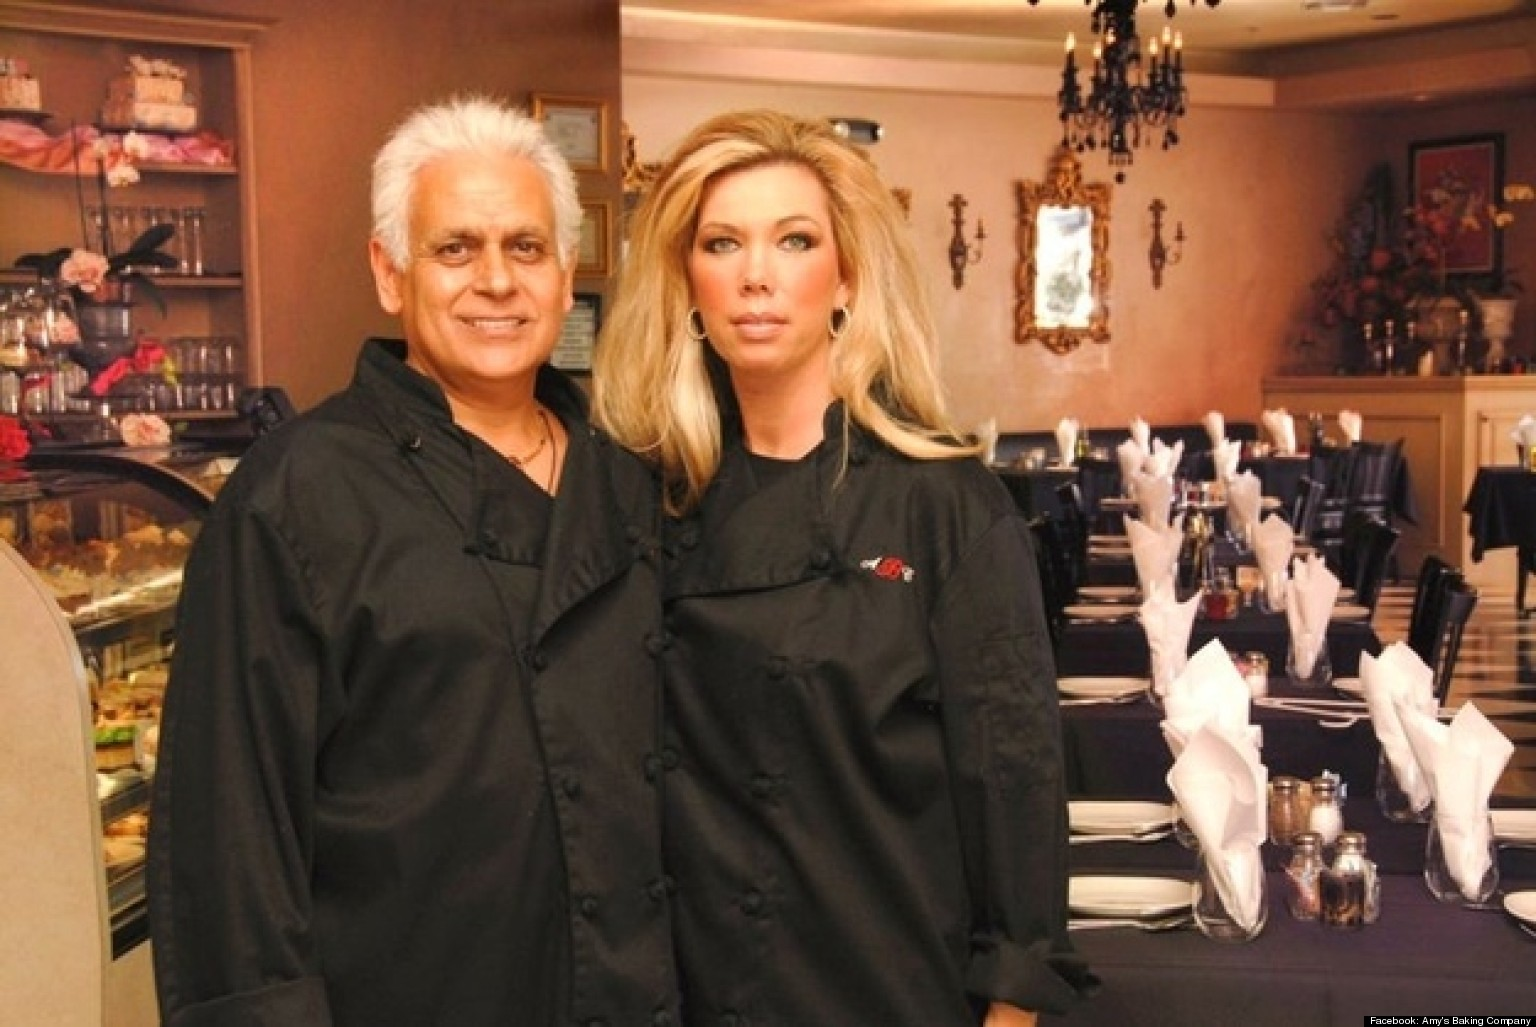 Amy S Restaurant Kitchen Nightmares amy's baking company freaks out online after epic meltdown on